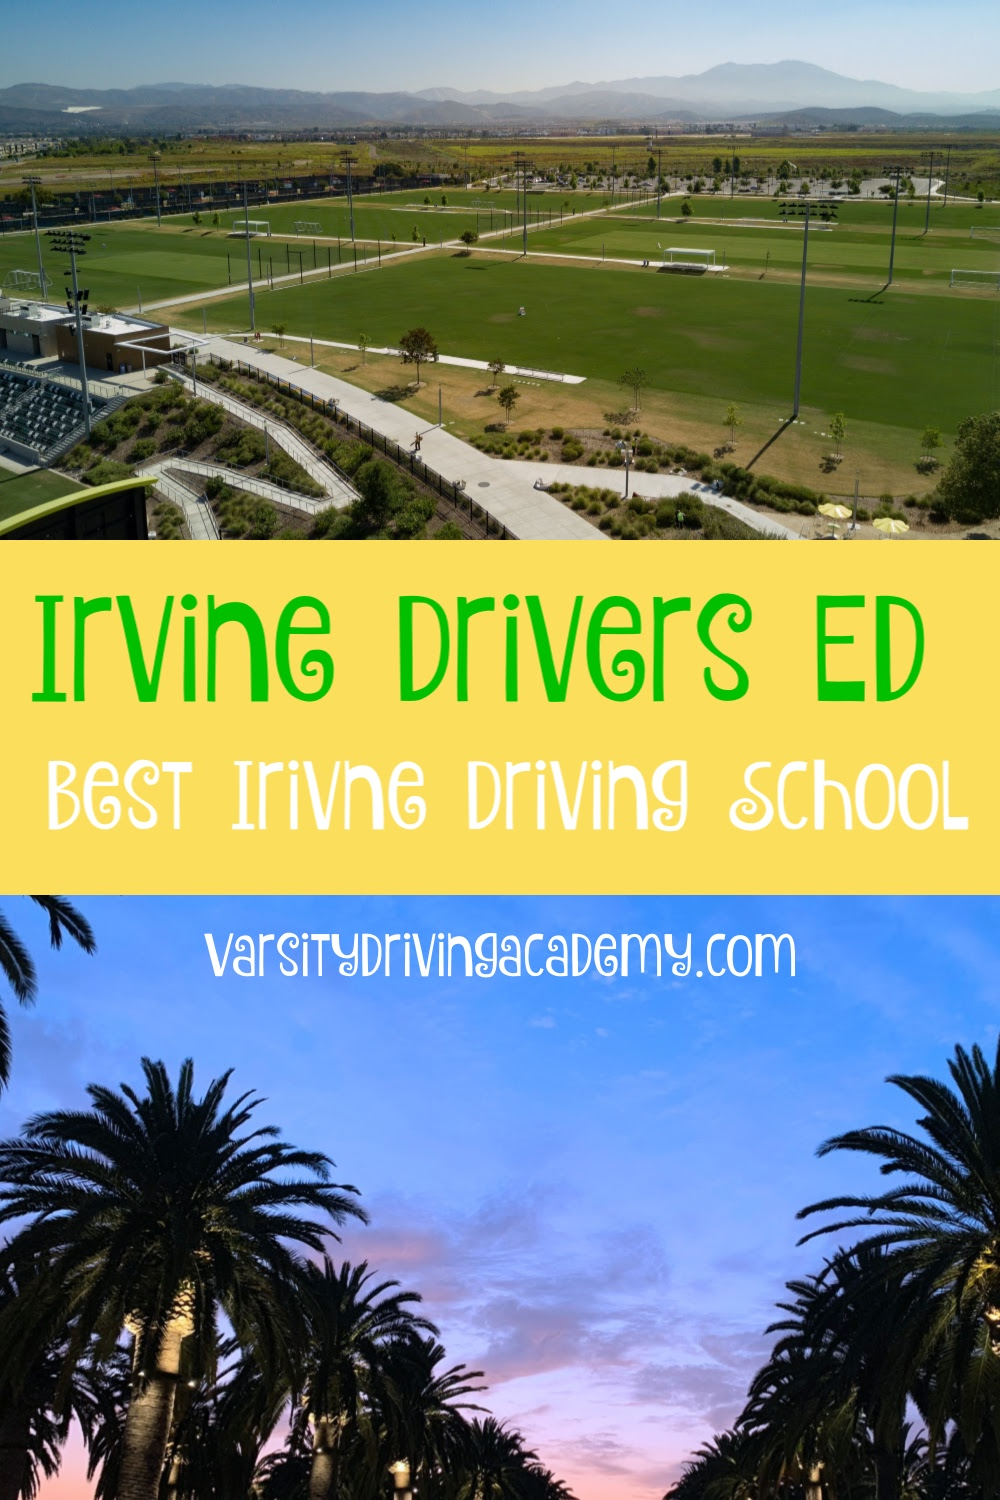 Varsity Driving Academy is the best Irvine drivers ed option for teens and adults to learn how to drive safely and get the best Irvine driving school experience available.